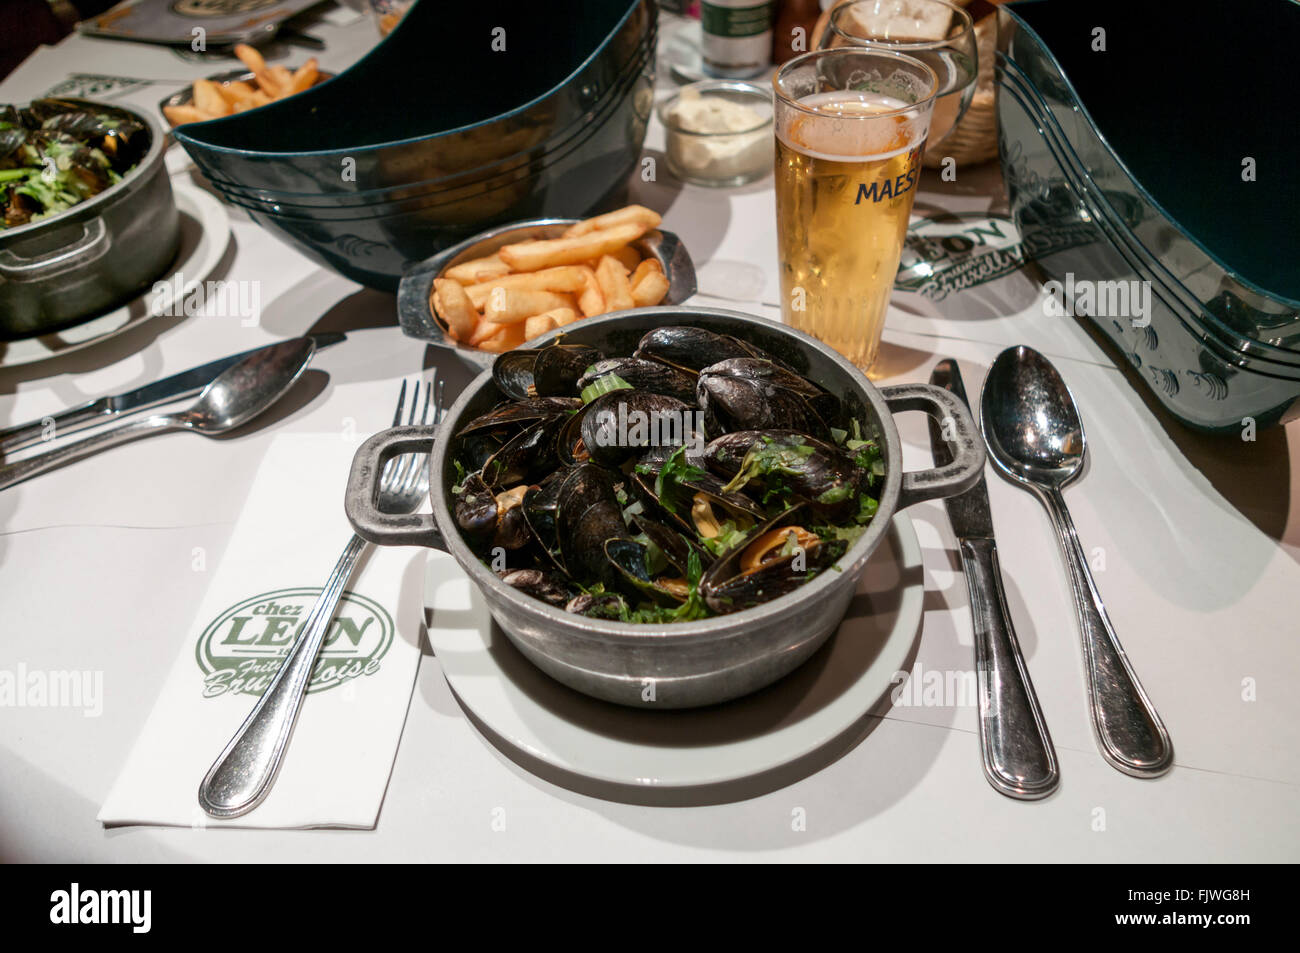 Moules marinières et frites; mussels with fries, served at Chez Léon restaurant in Brussels, Belgium. - Stock Image